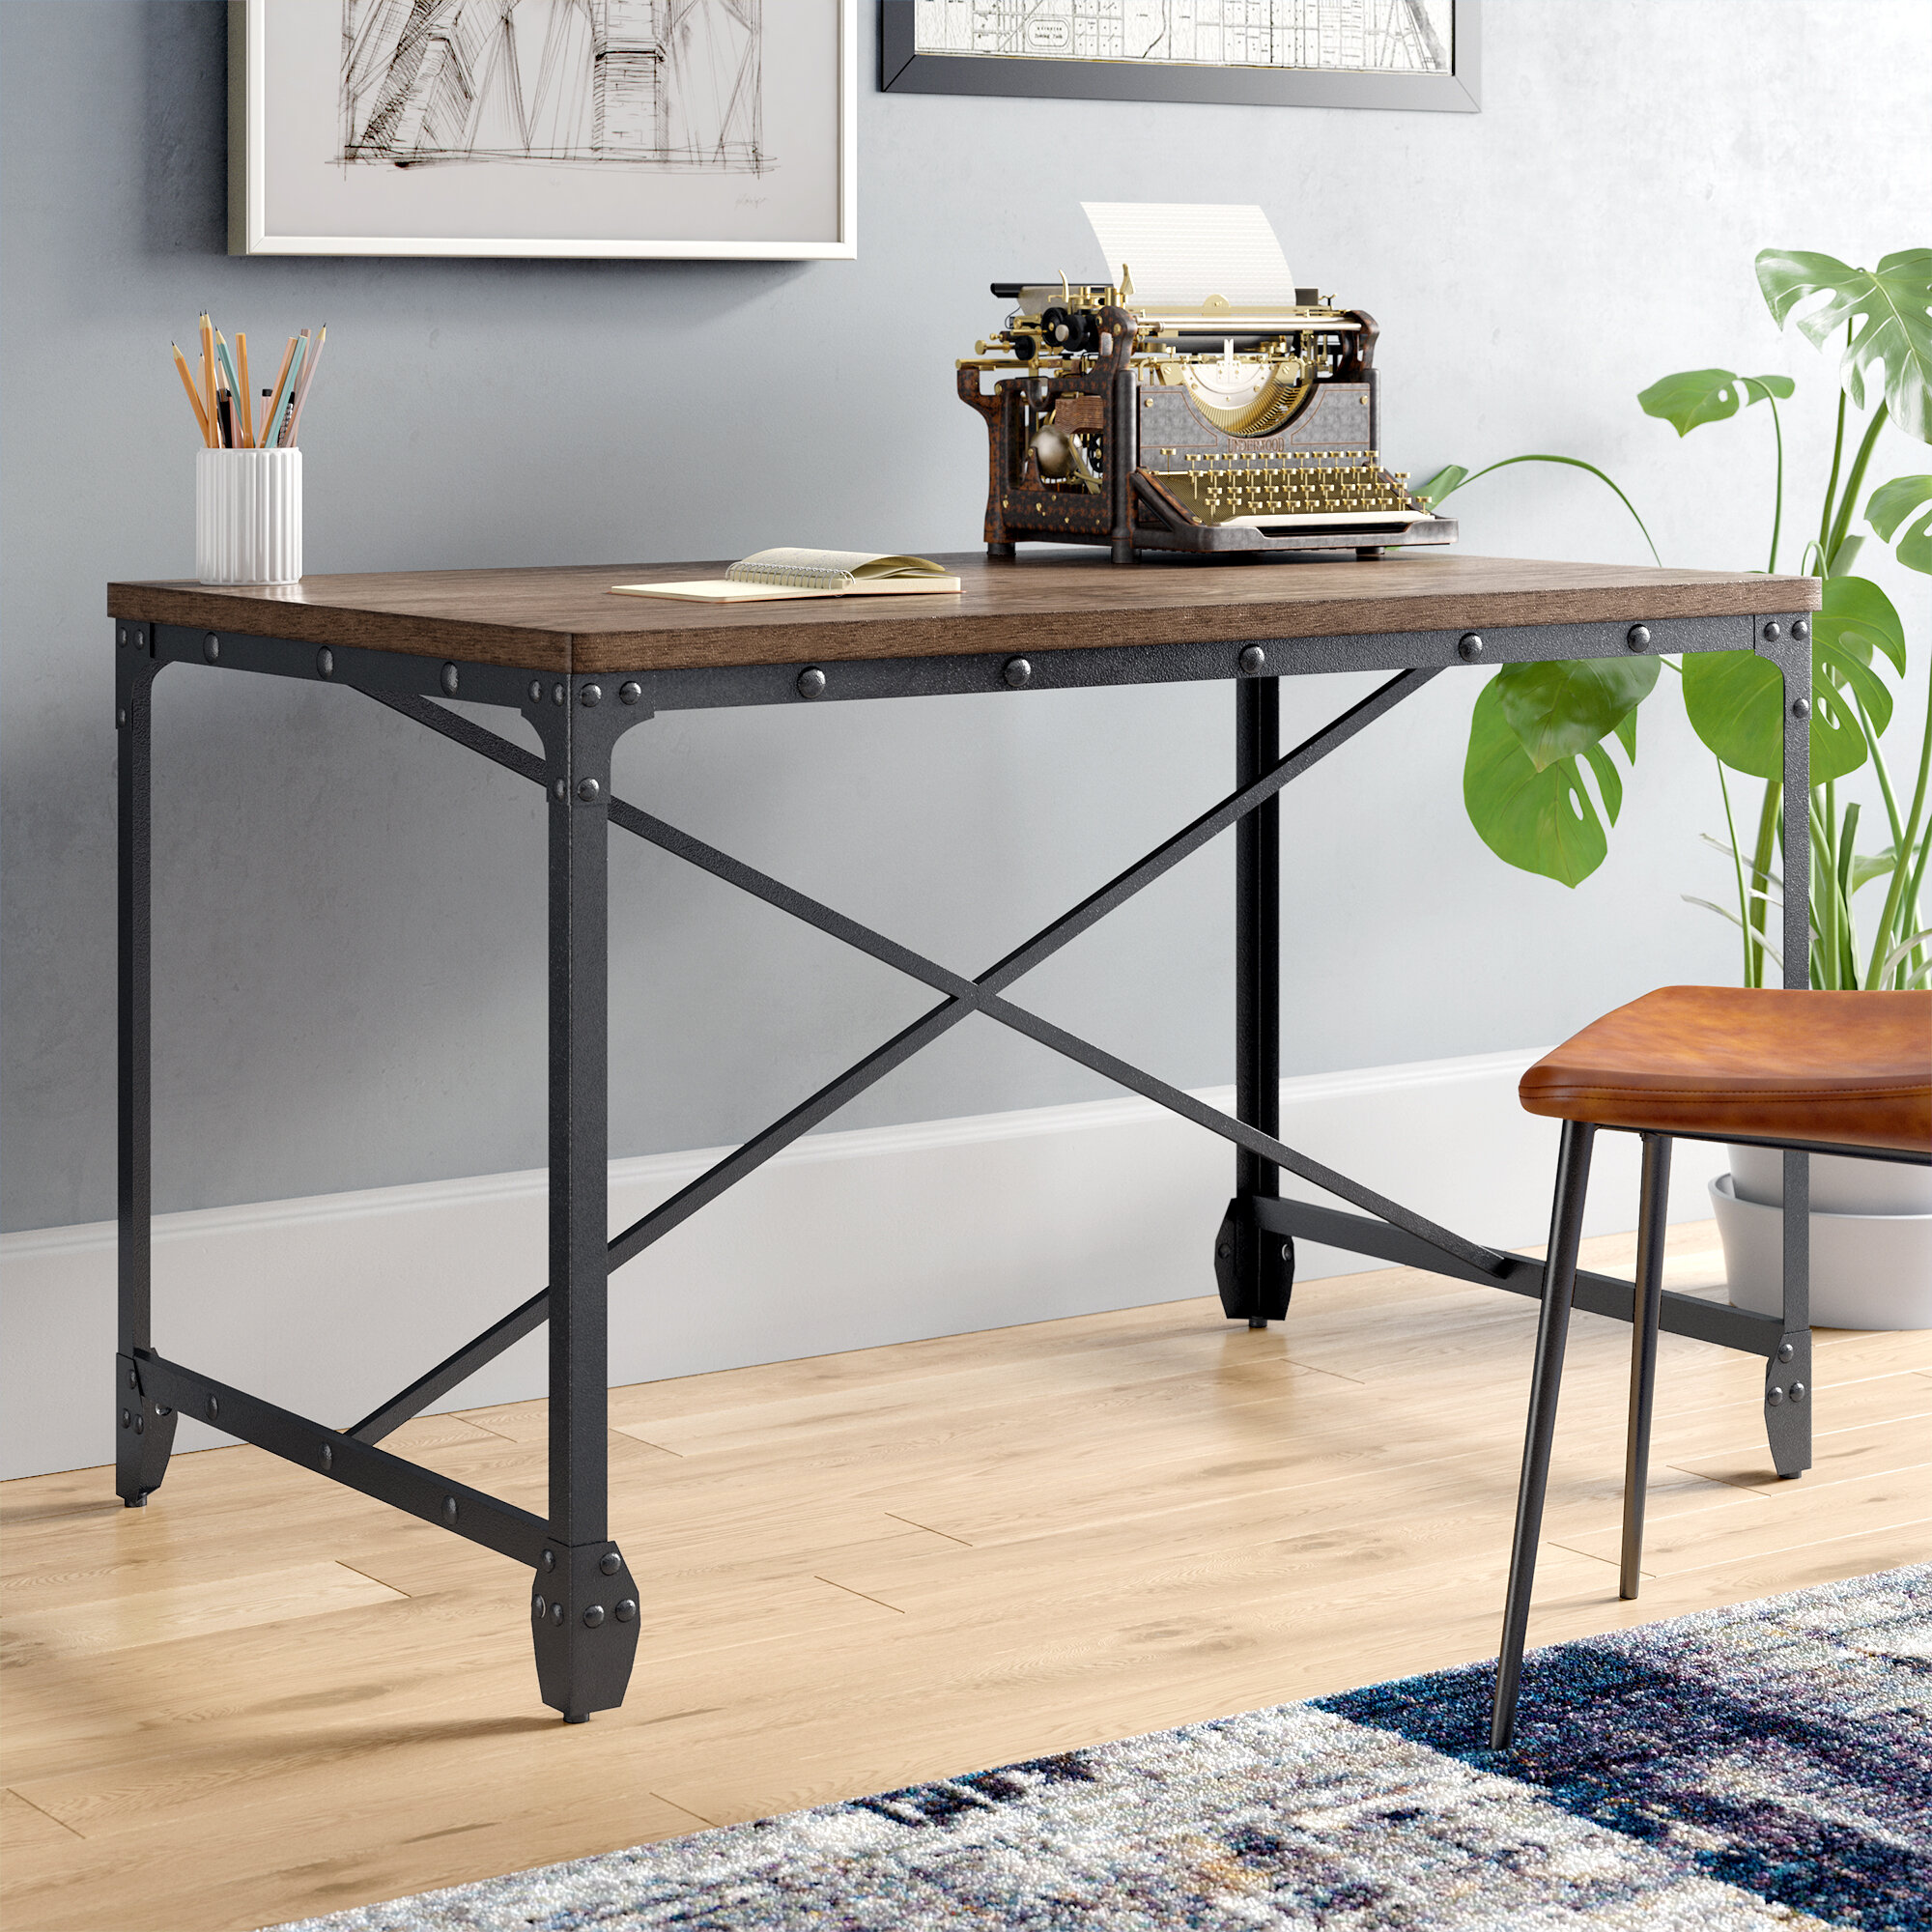 been to spaces white has successfully your qty desk writing gray living alton cart added pdp